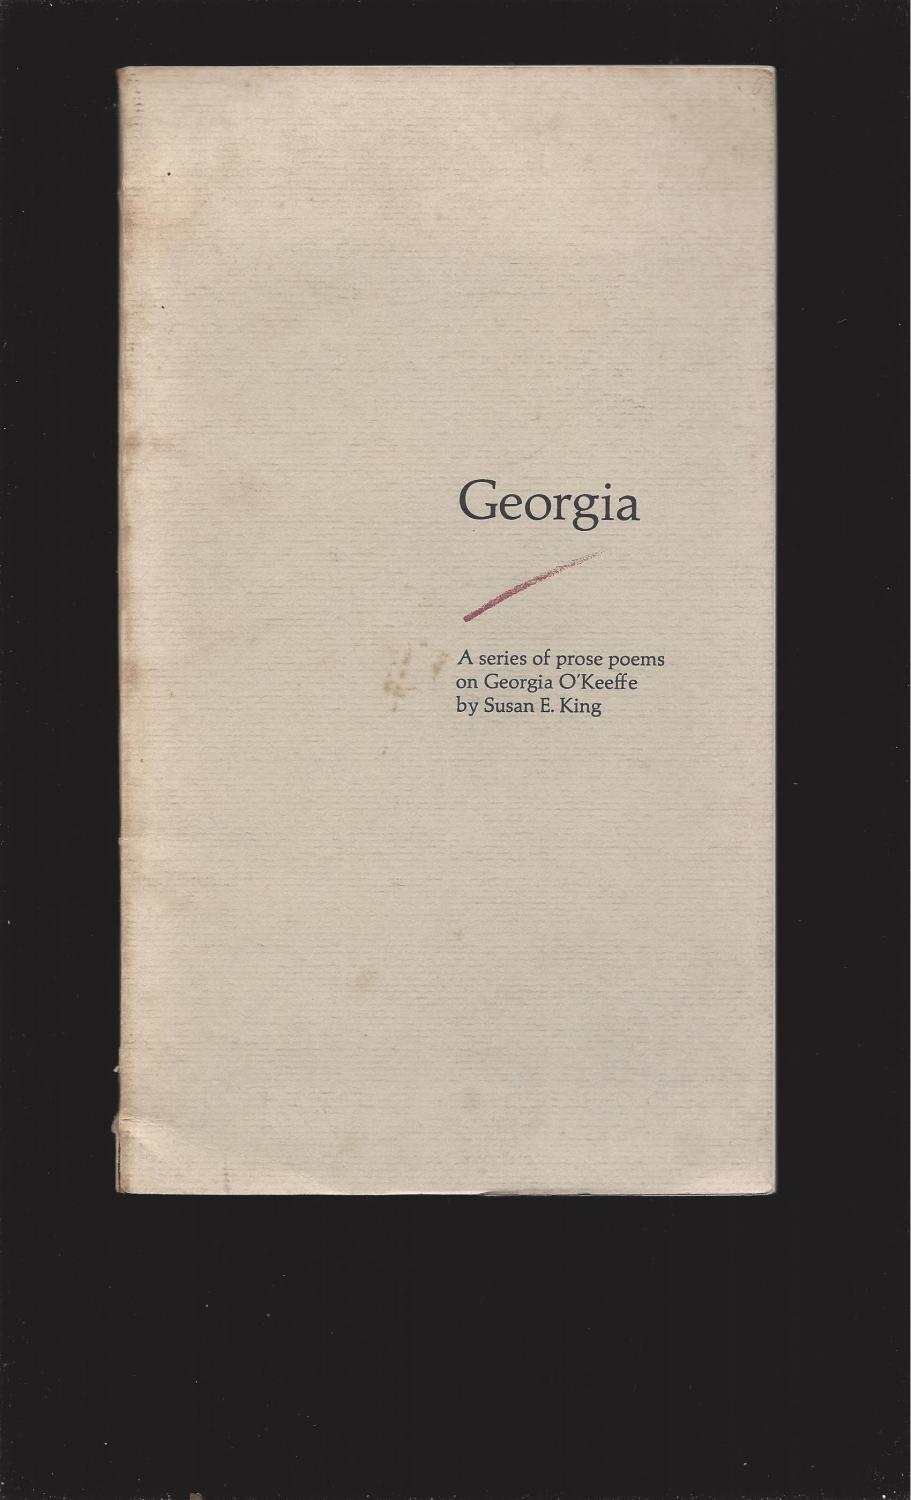 georgia a series of prose poems on georgia okeeffe